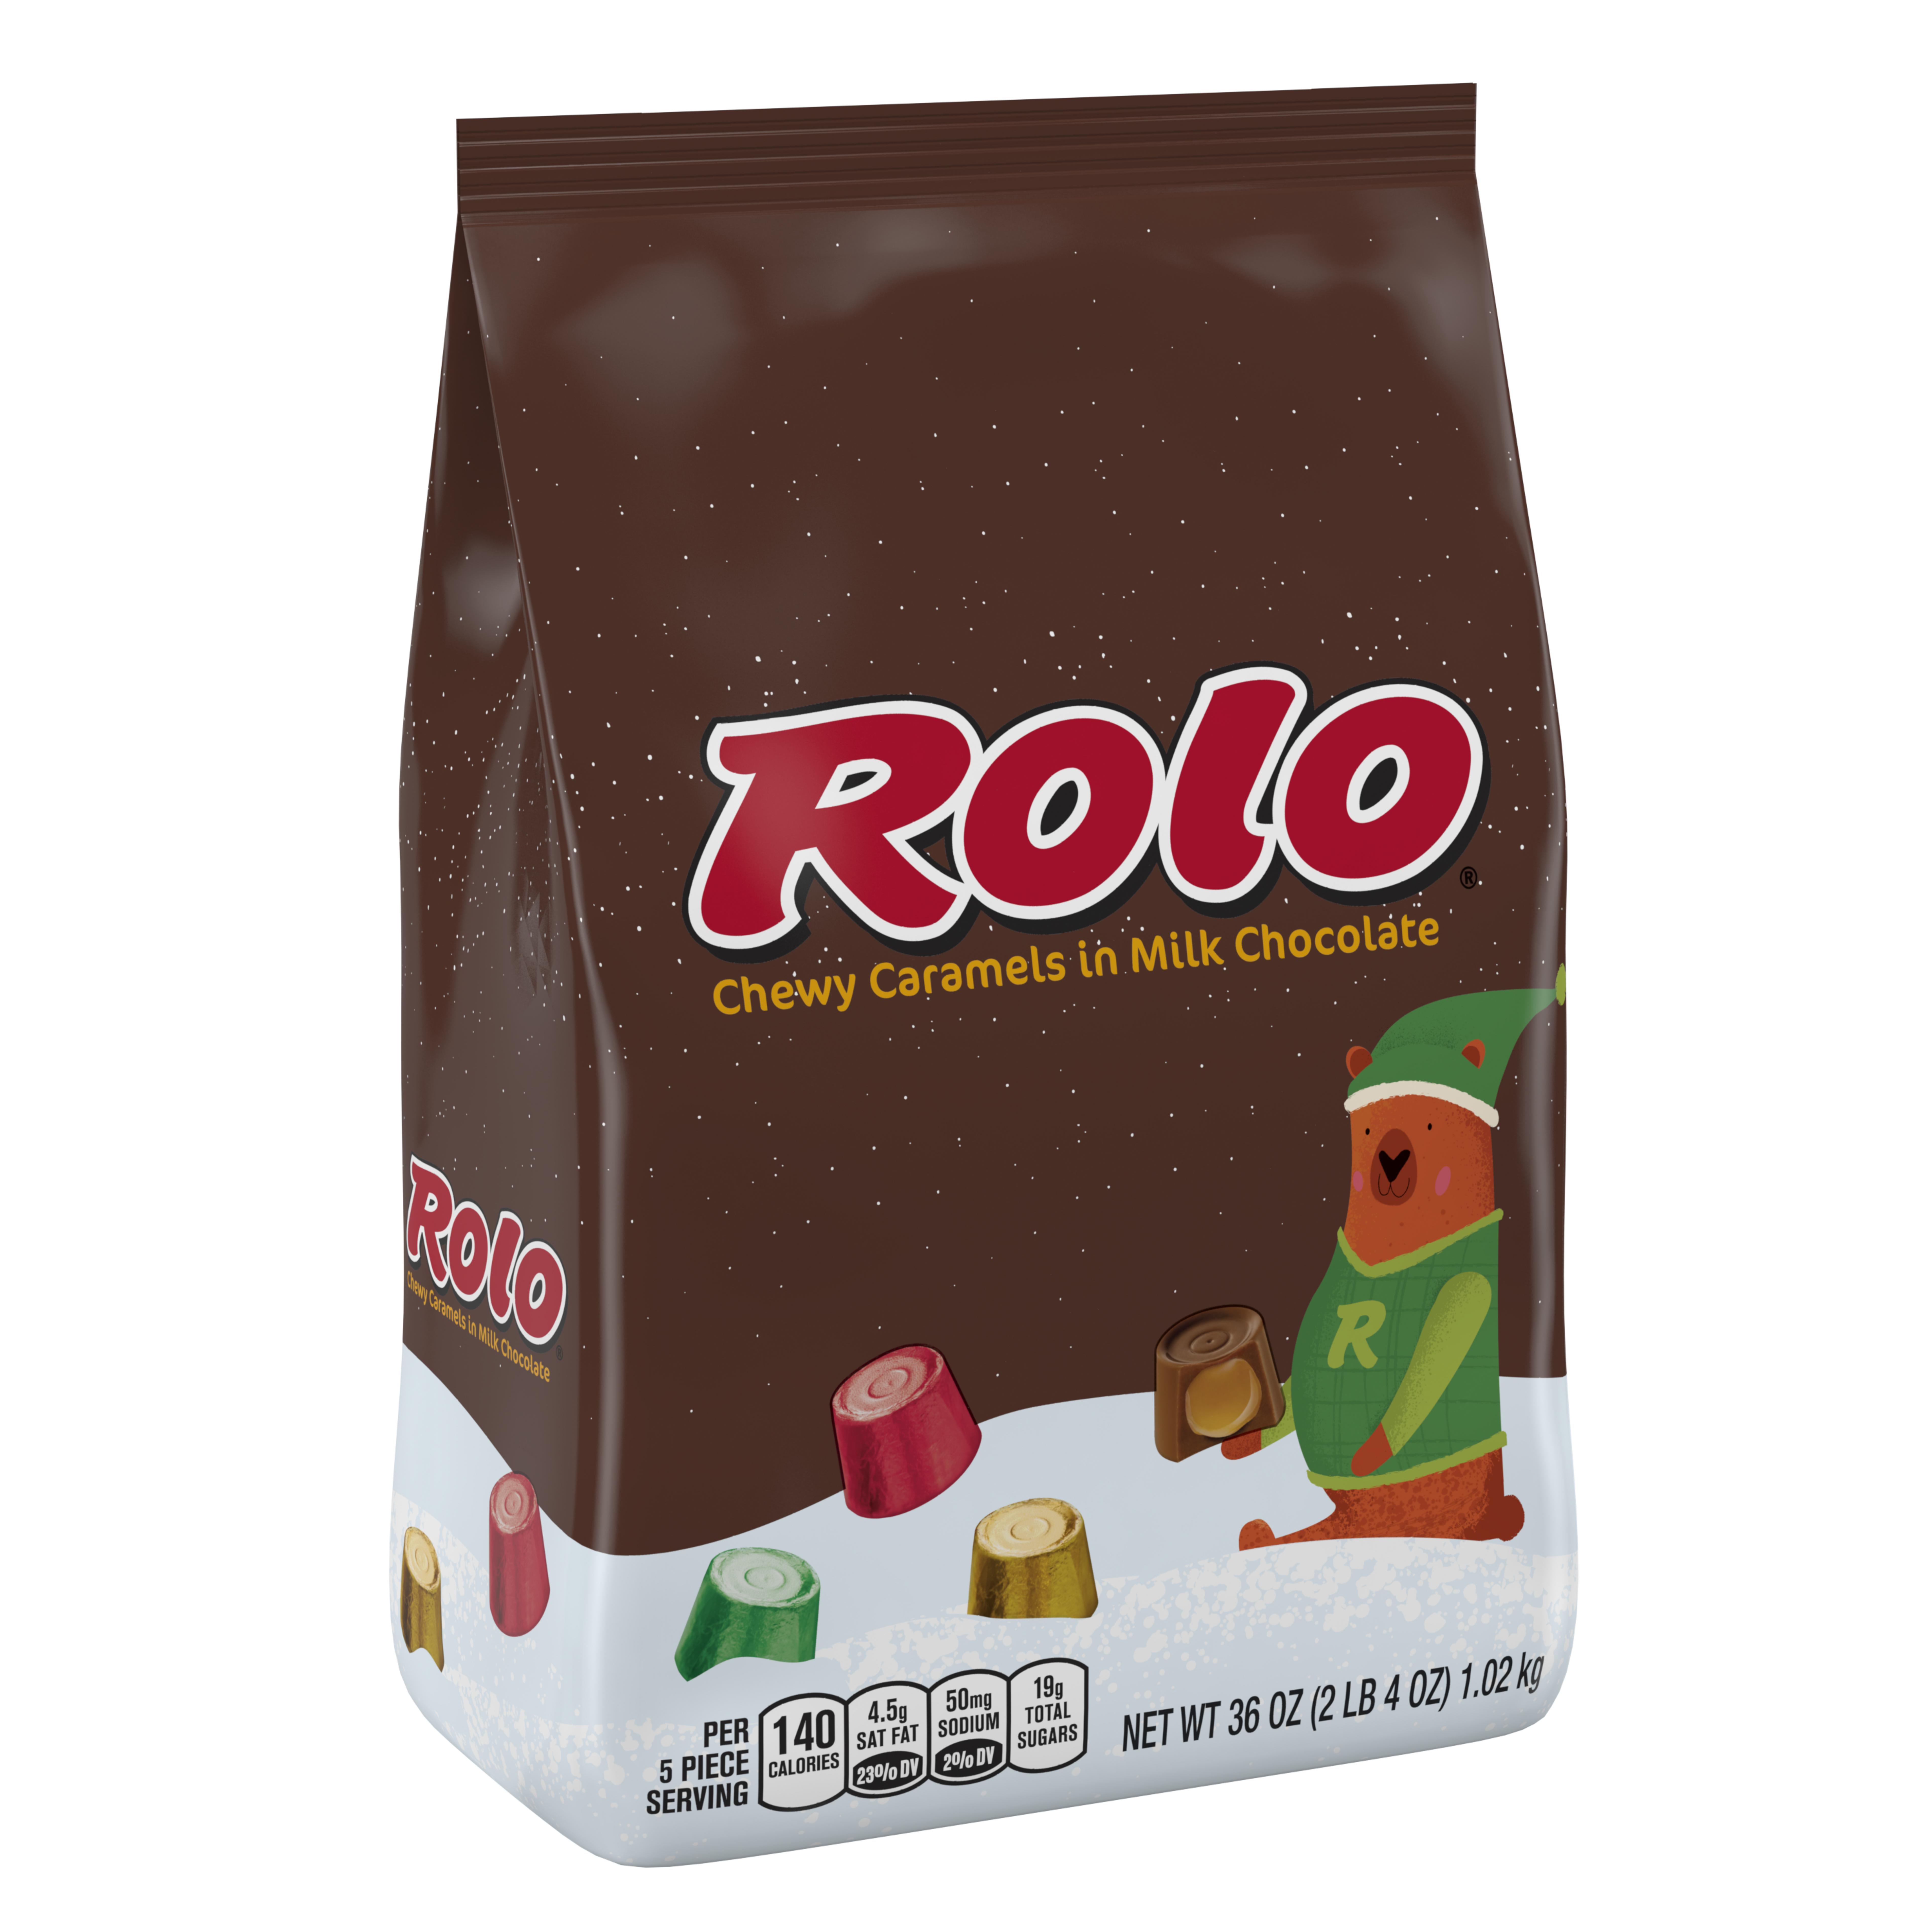 Rolo, Holiday Chewy Caramels in Milk Chocolate, 36 Oz